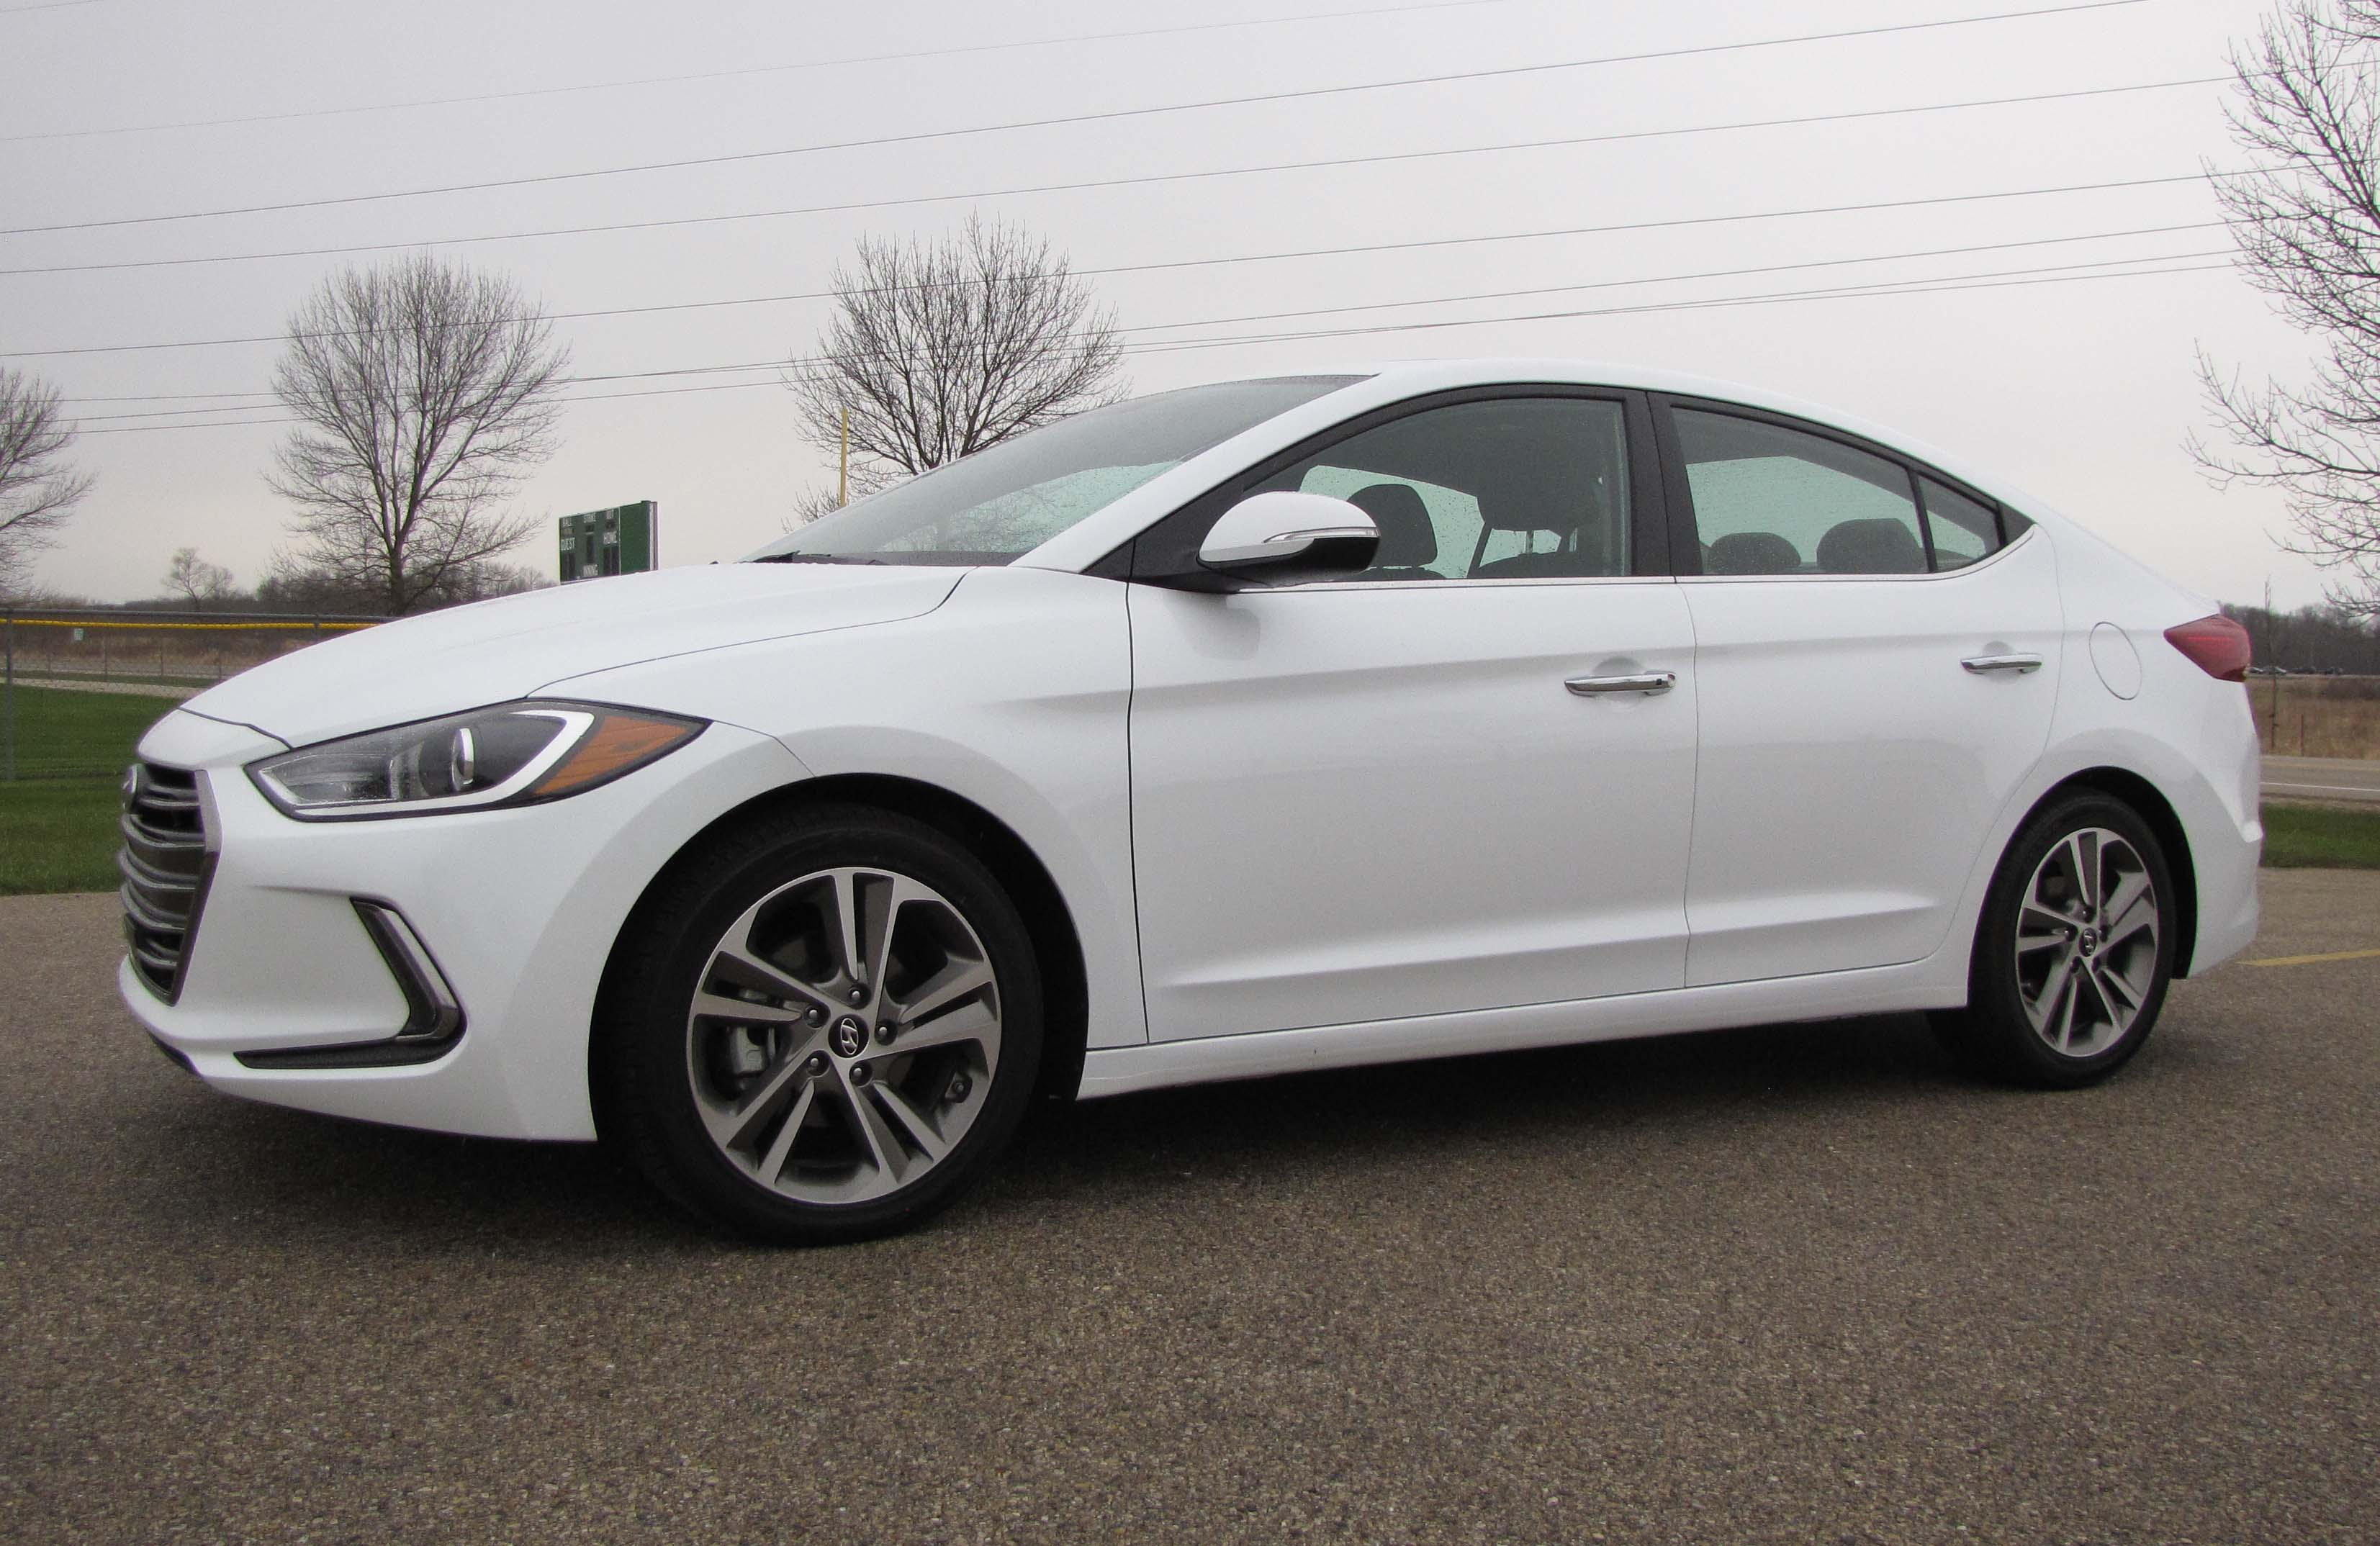 Elantra Gas Mileage Upcomingcarshq Com